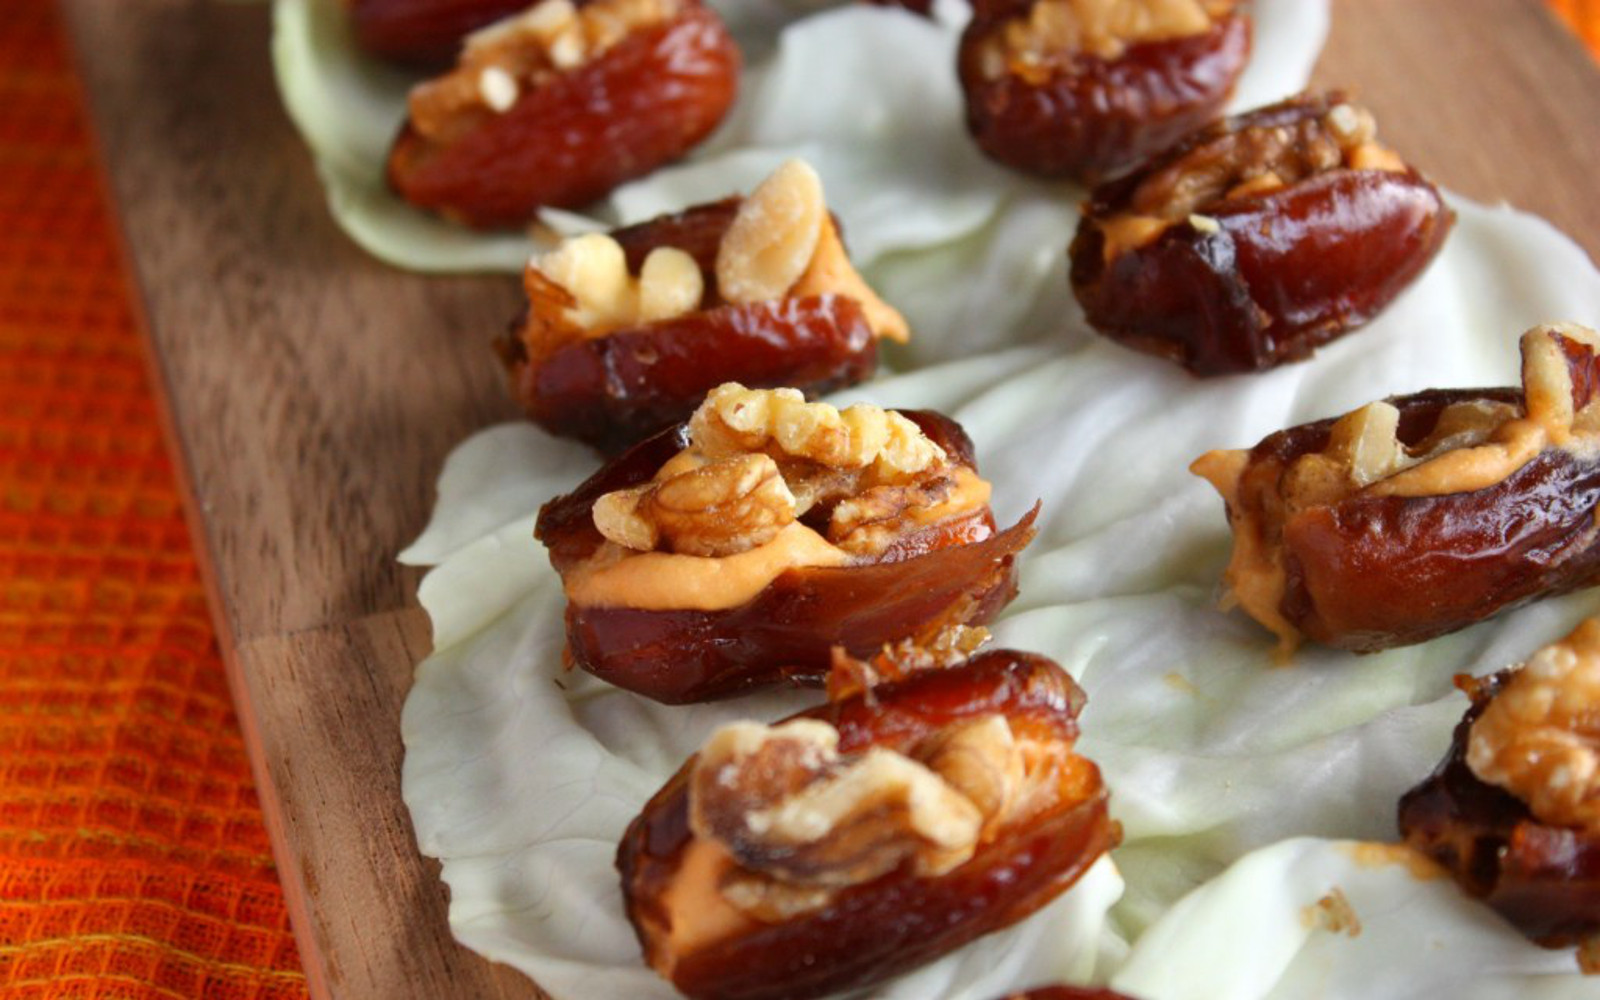 Walnut and Cashew Cheese Stuffed Dates